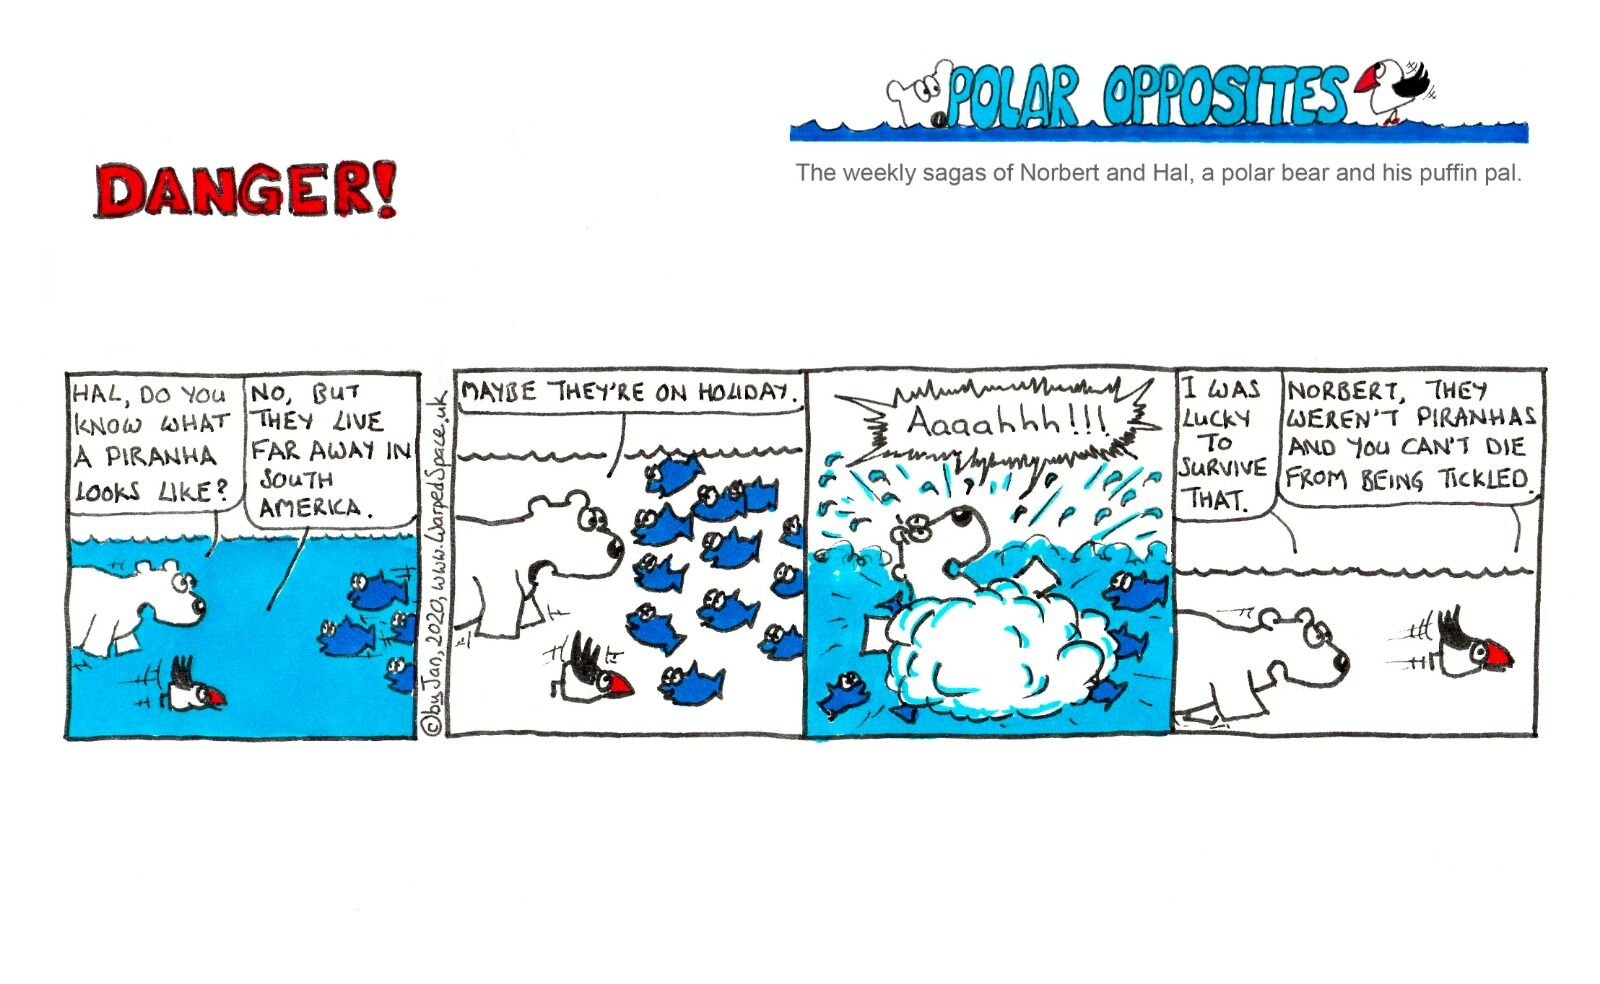 THE FIRST EVER POLAR OPPOSITES STRIP - 10th August - Week 33 - Danger!